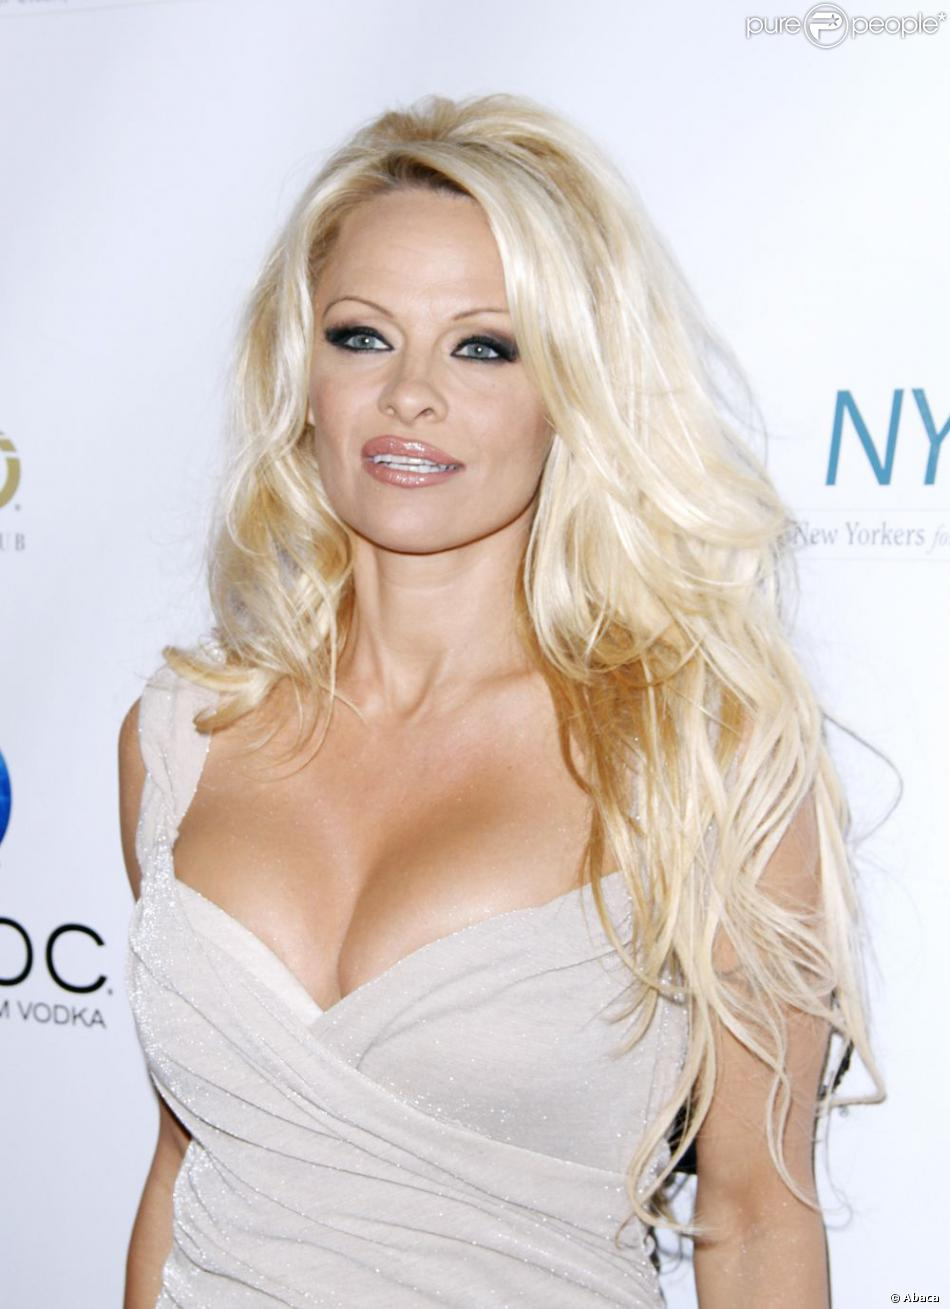 pamela anderson sexy et tr s d collet e pour prot ger les chevaux de new york purepeople. Black Bedroom Furniture Sets. Home Design Ideas